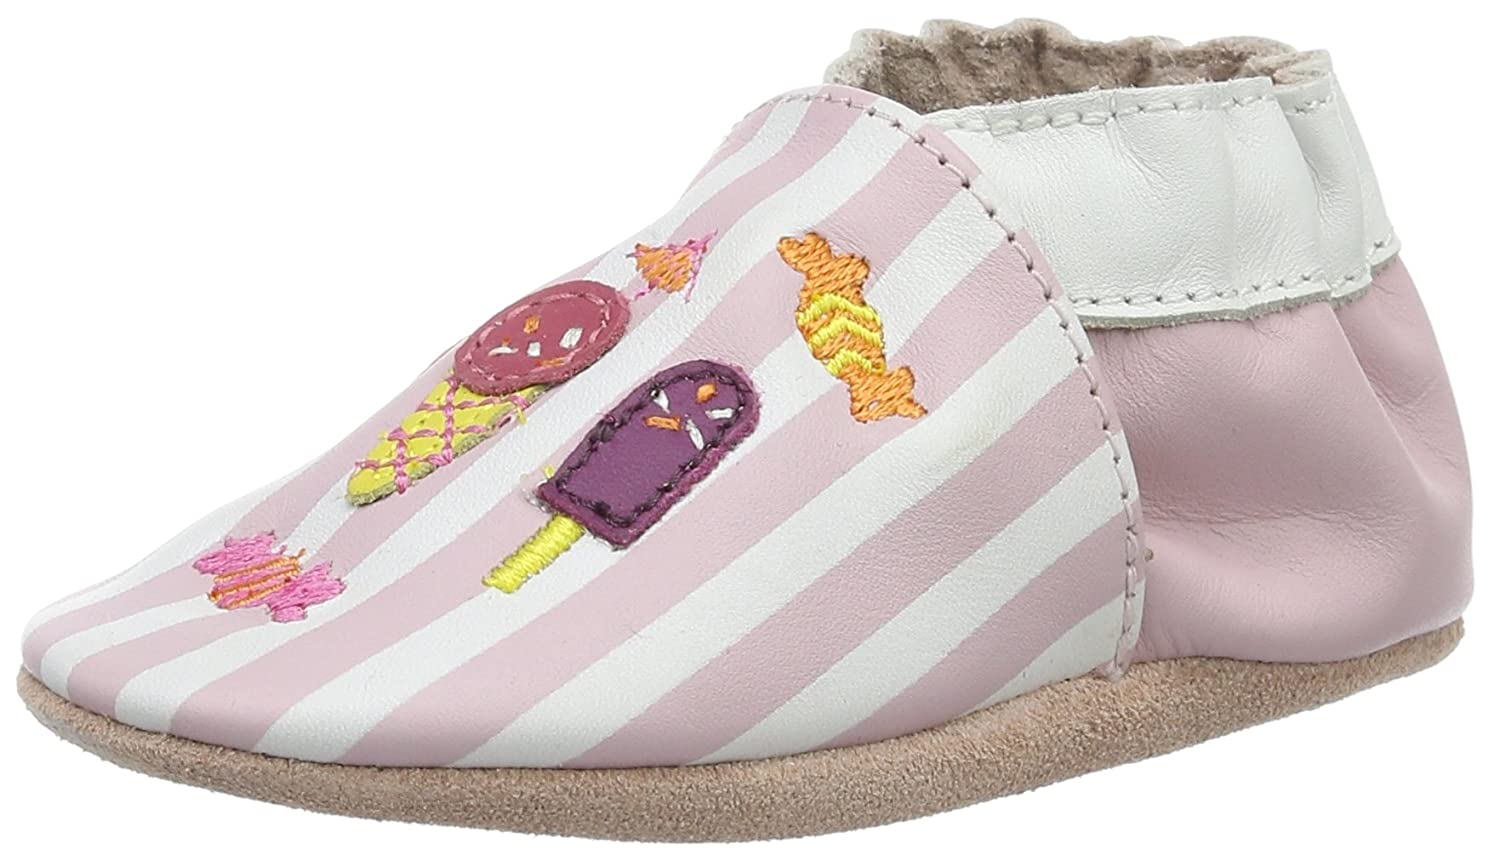 Robeez Candy Shop, Baby Girls' Babyshoes and Slippers Baby Girls' Babyshoes and Slippers 547570-10